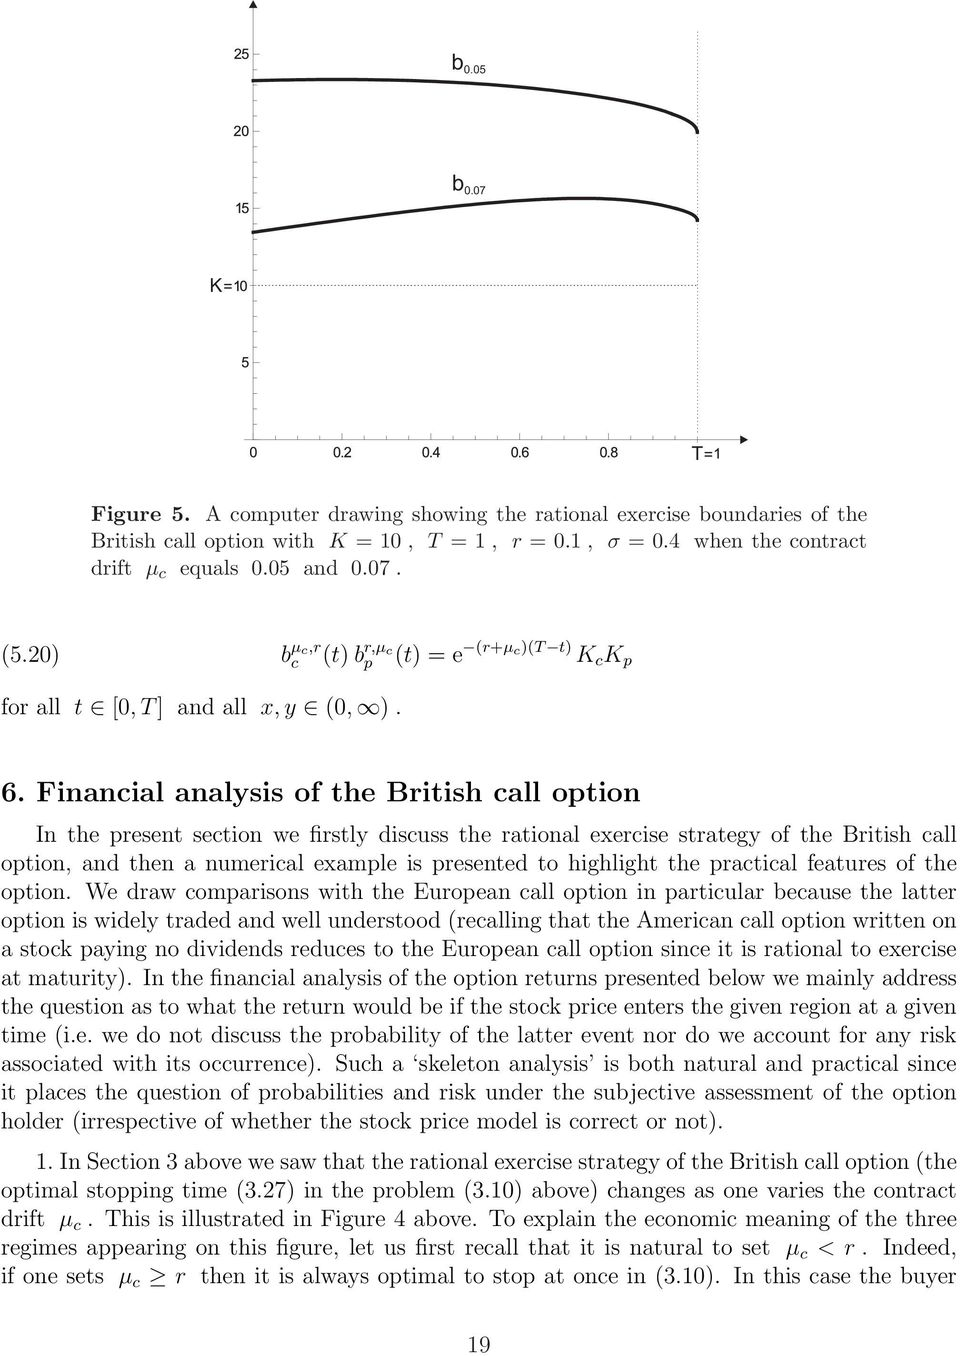 Financial analysis of the British call option In the present section we firstly discuss the rational exercise strategy of the British call option, and then a numerical example is presented to